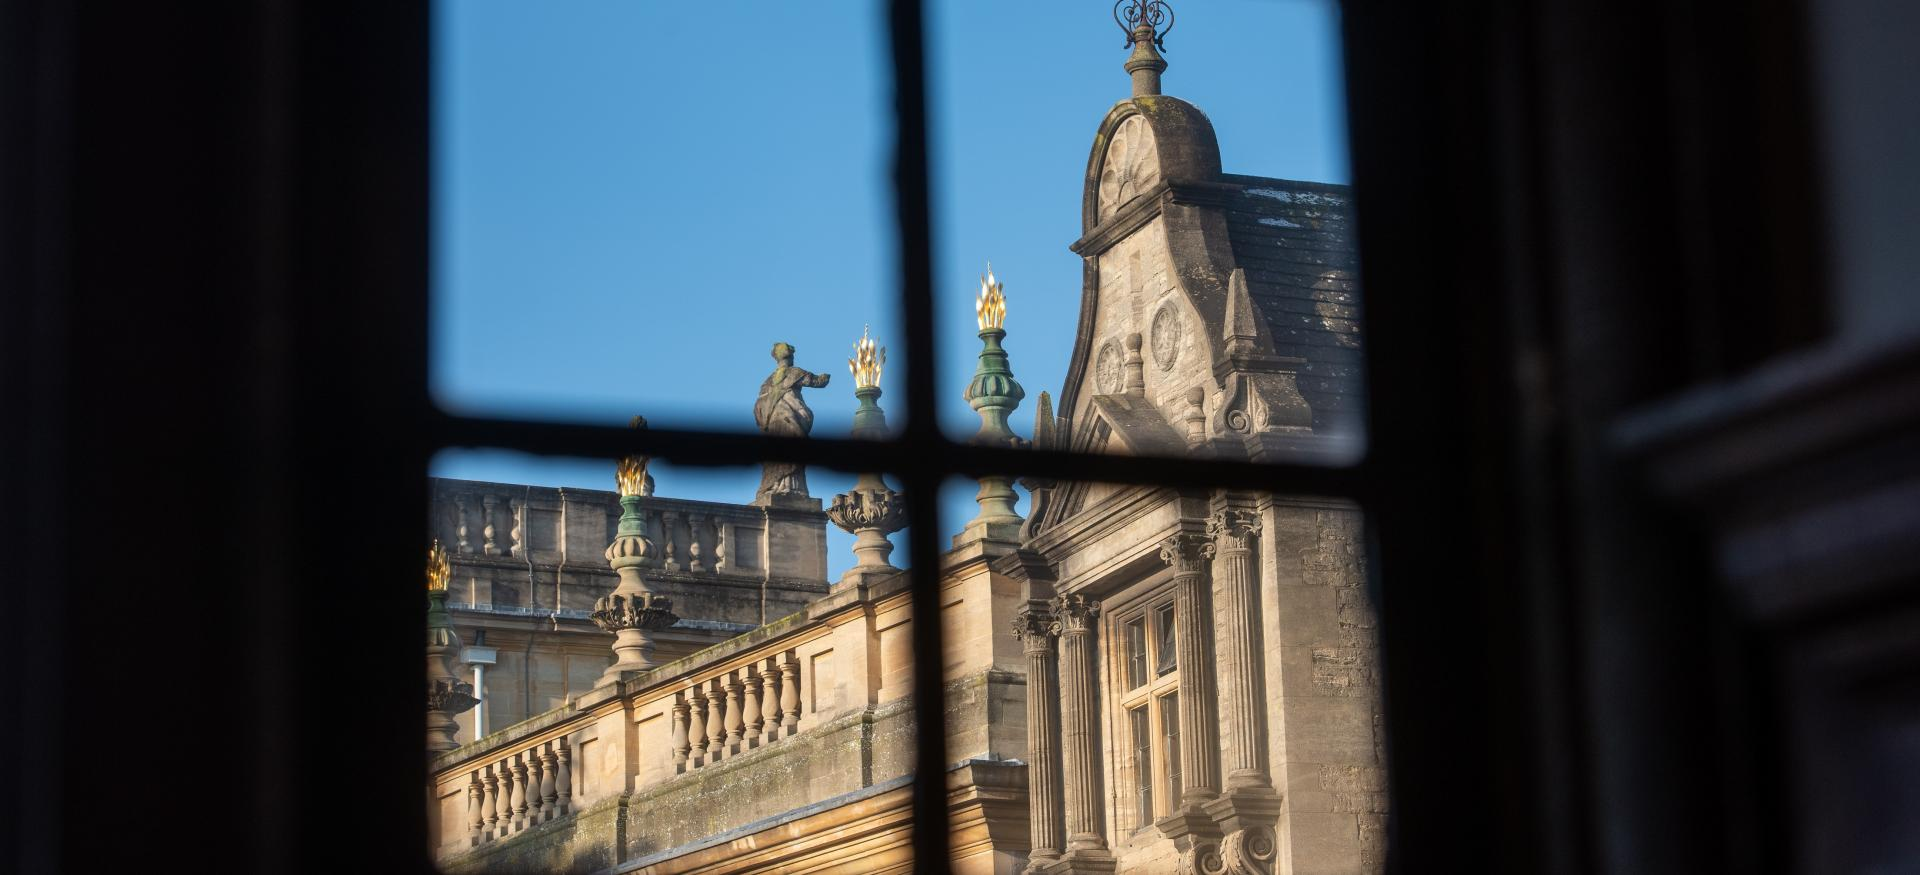 A view of the Trinity College chapel and president's lodgings through a window.